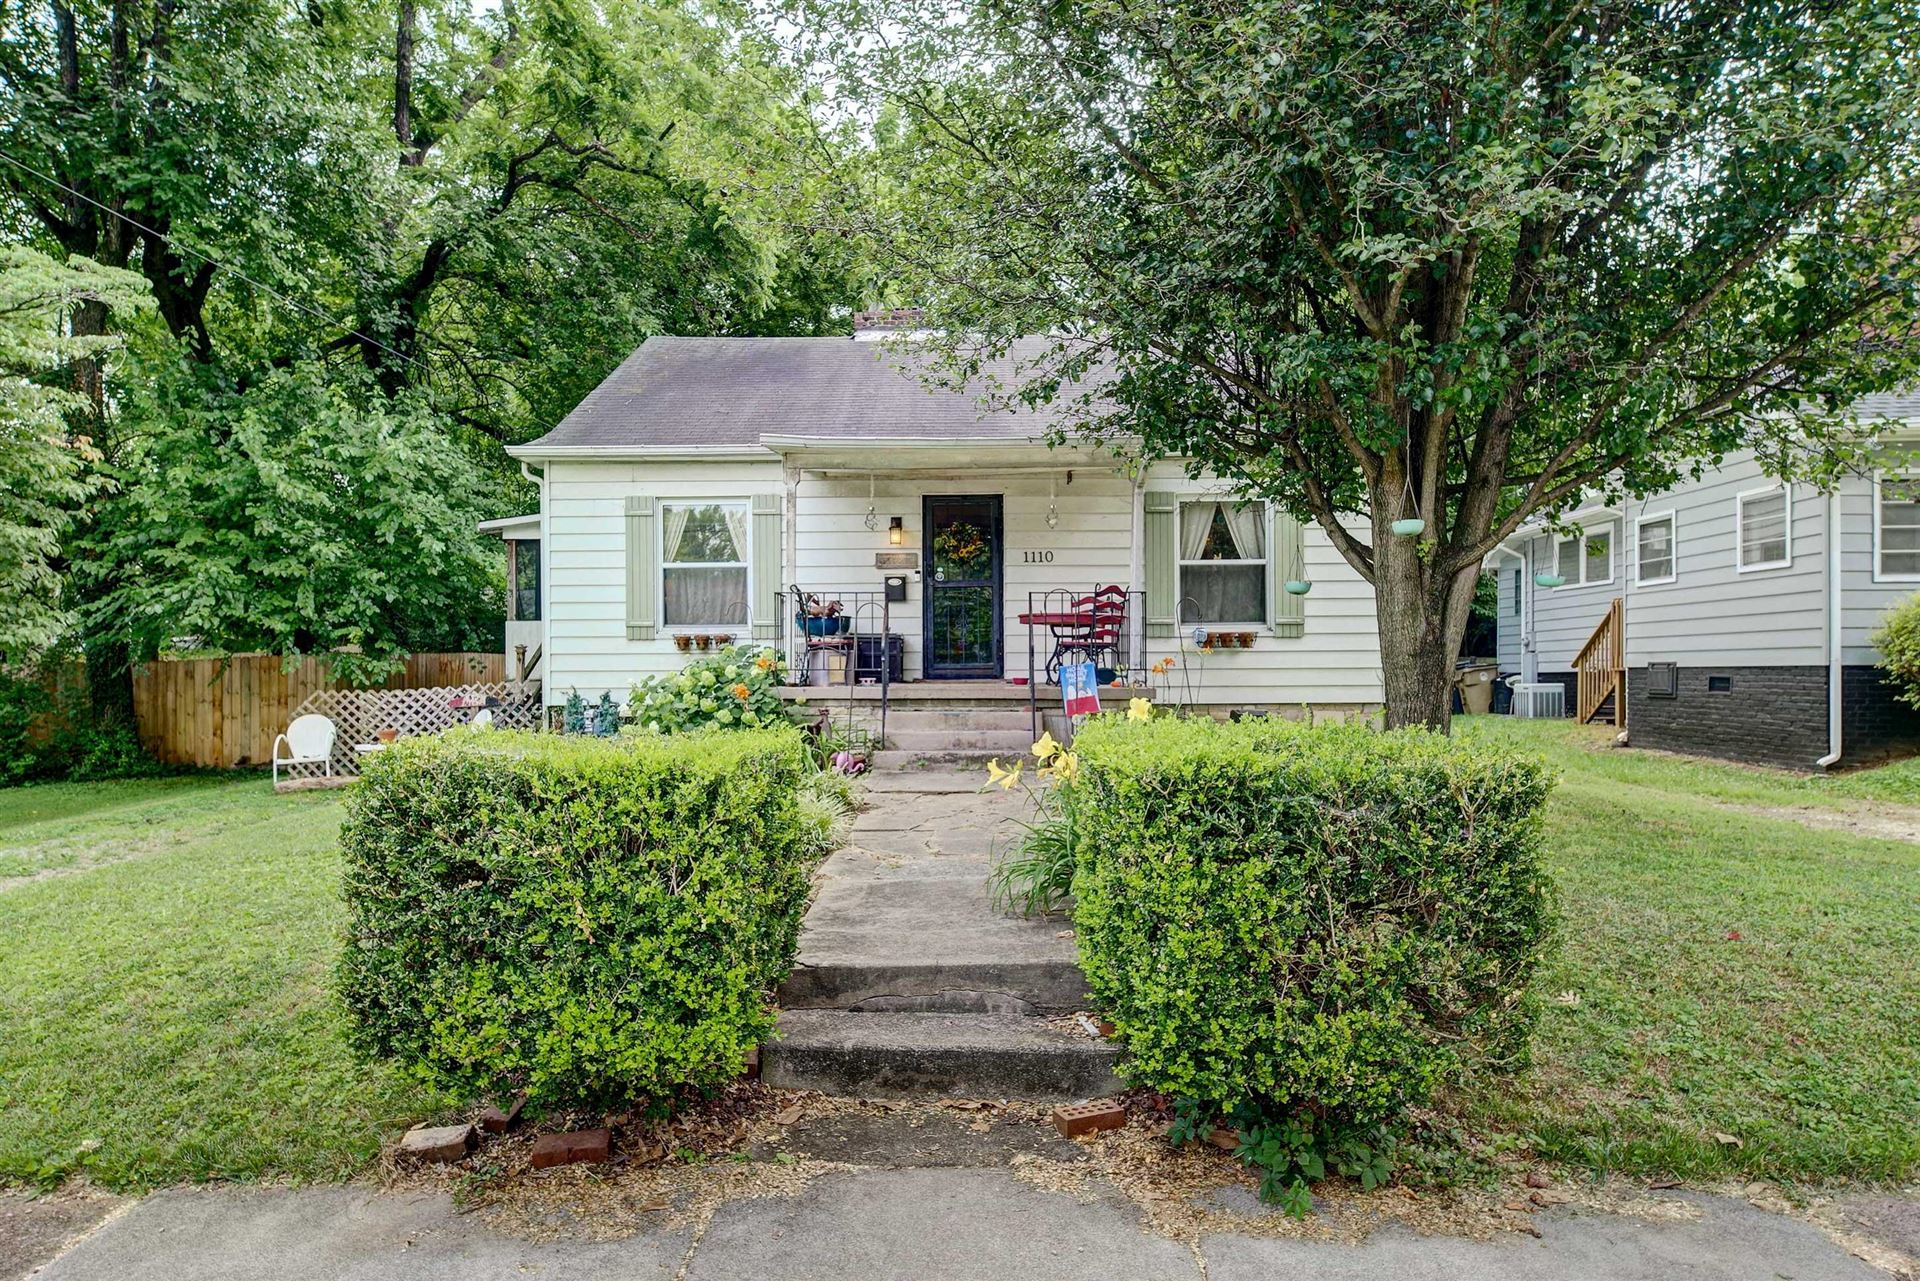 1110 Melbourne Ave, Knoxville, TN 37917 - MLS#: 1161346